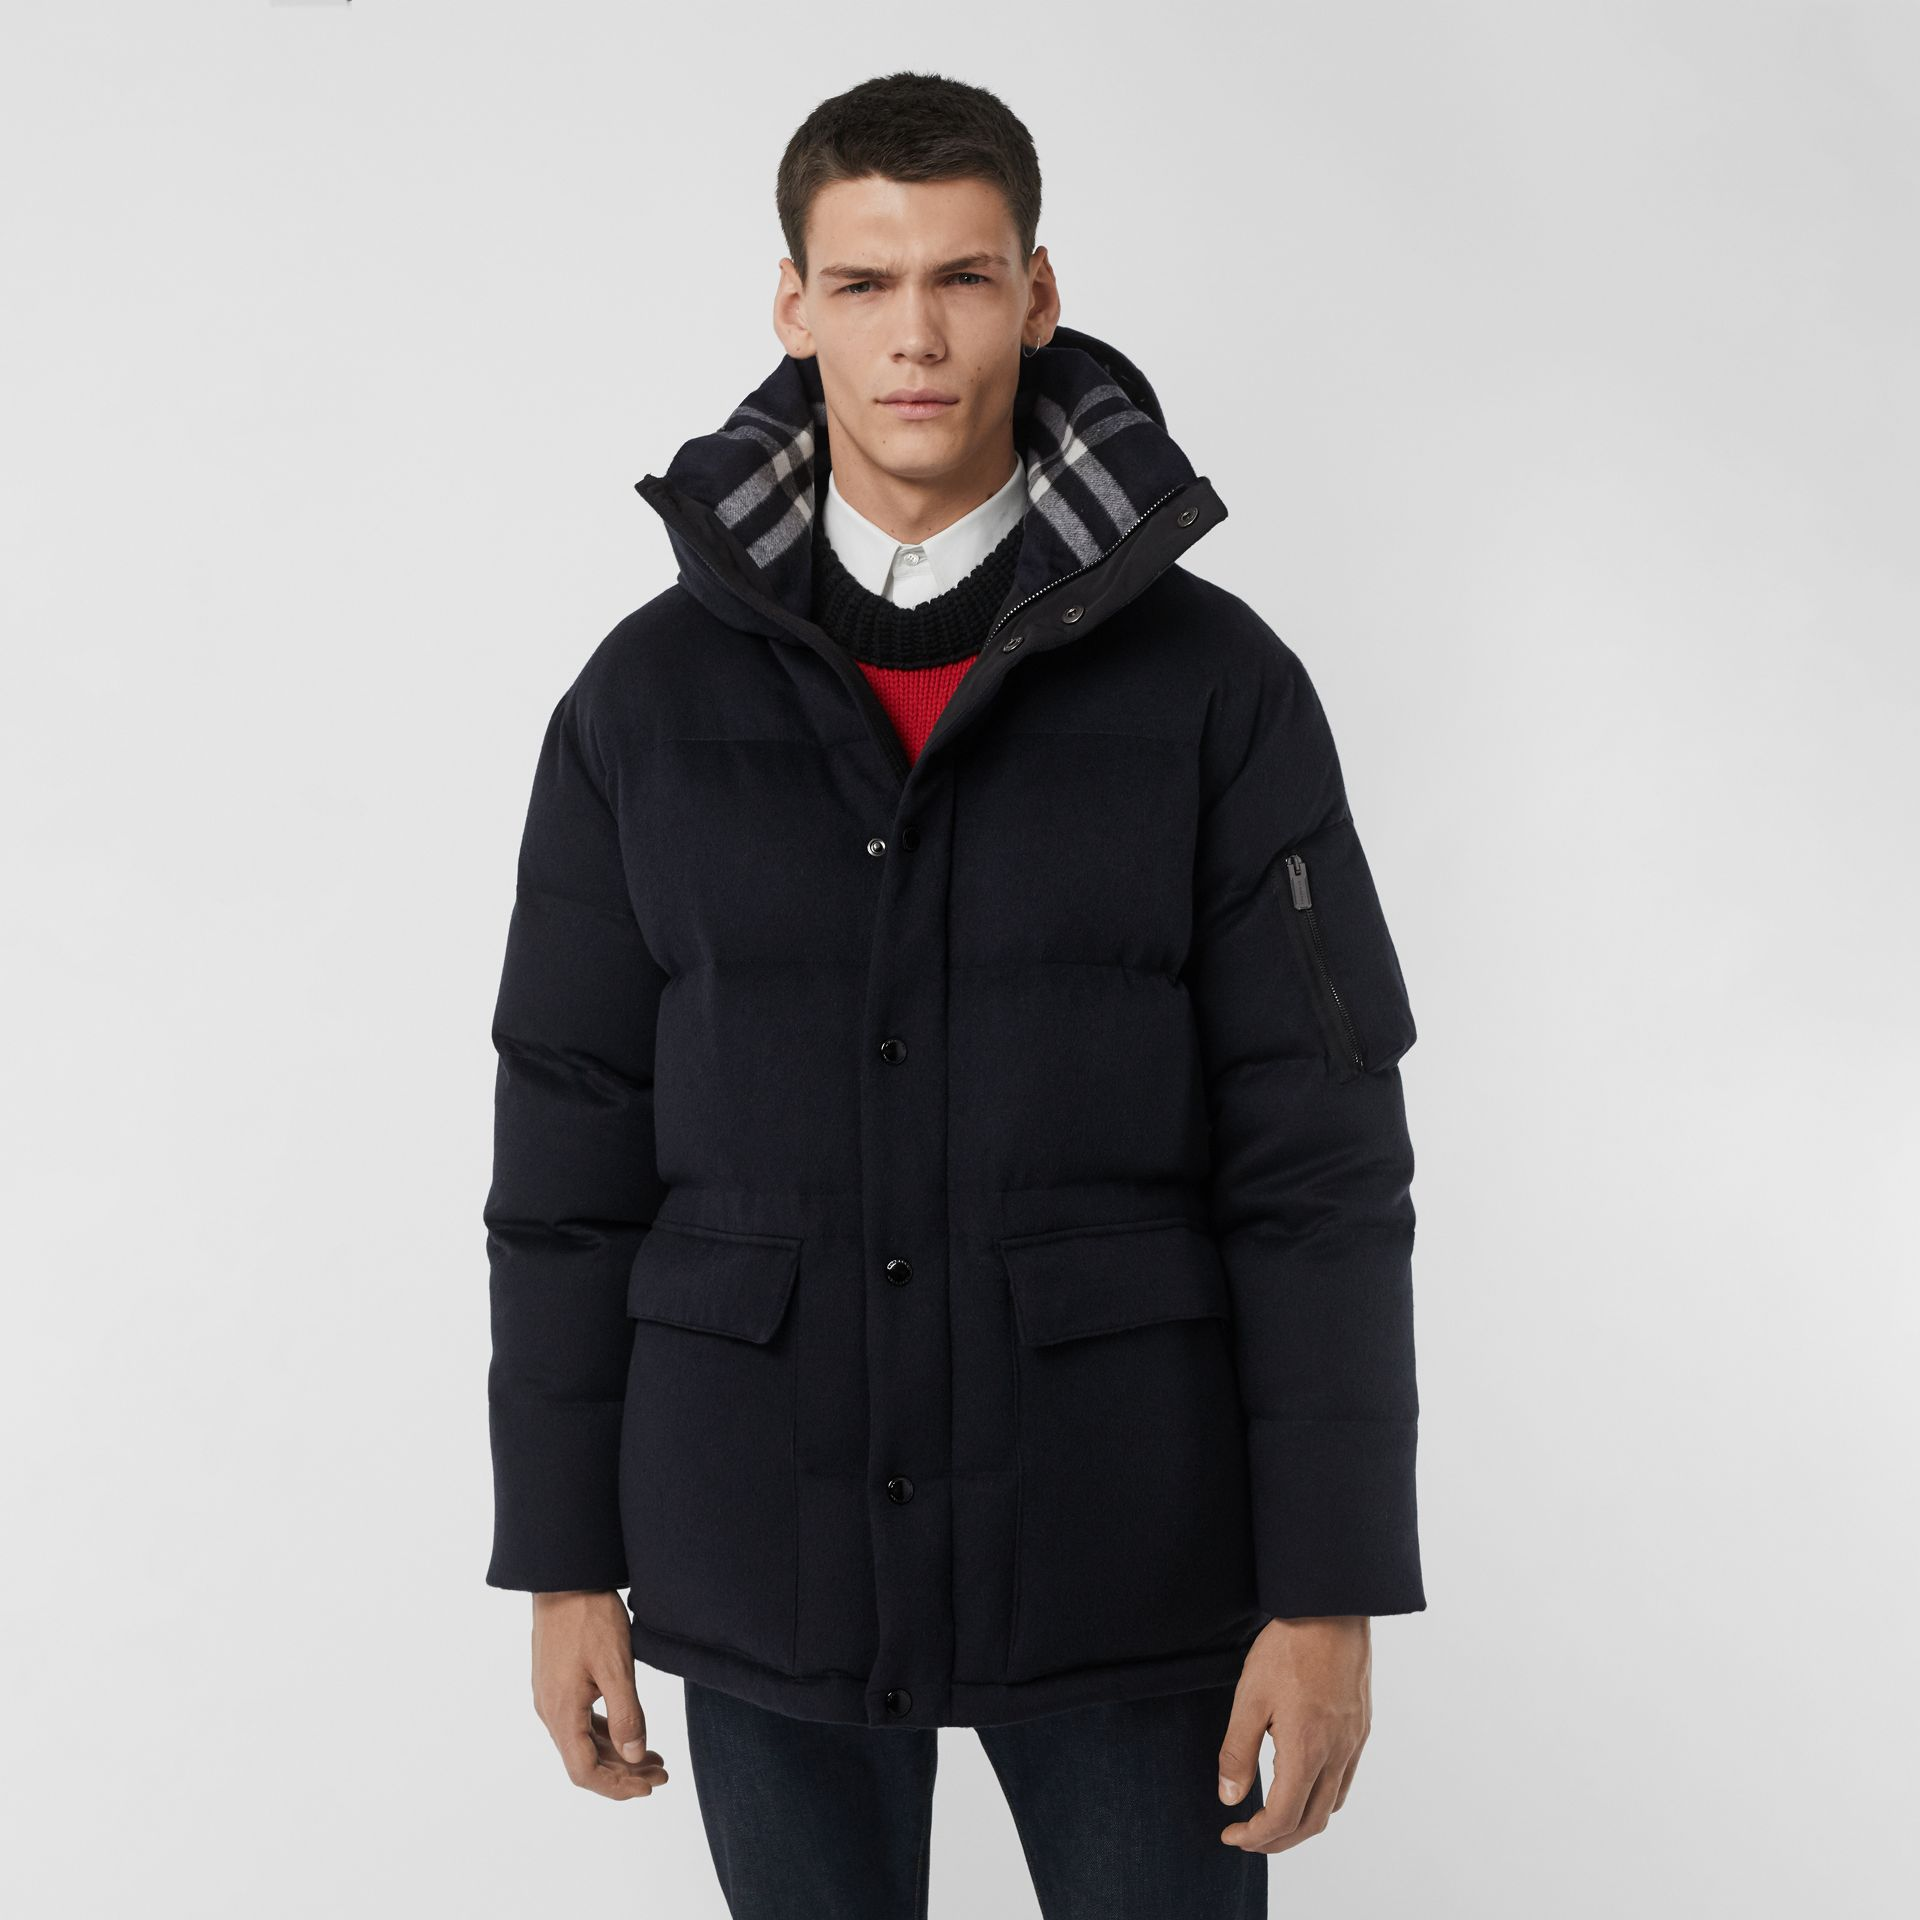 Cashmere Down-filled Hooded Jacket in Navy Melange - Men | Burberry - gallery image 5